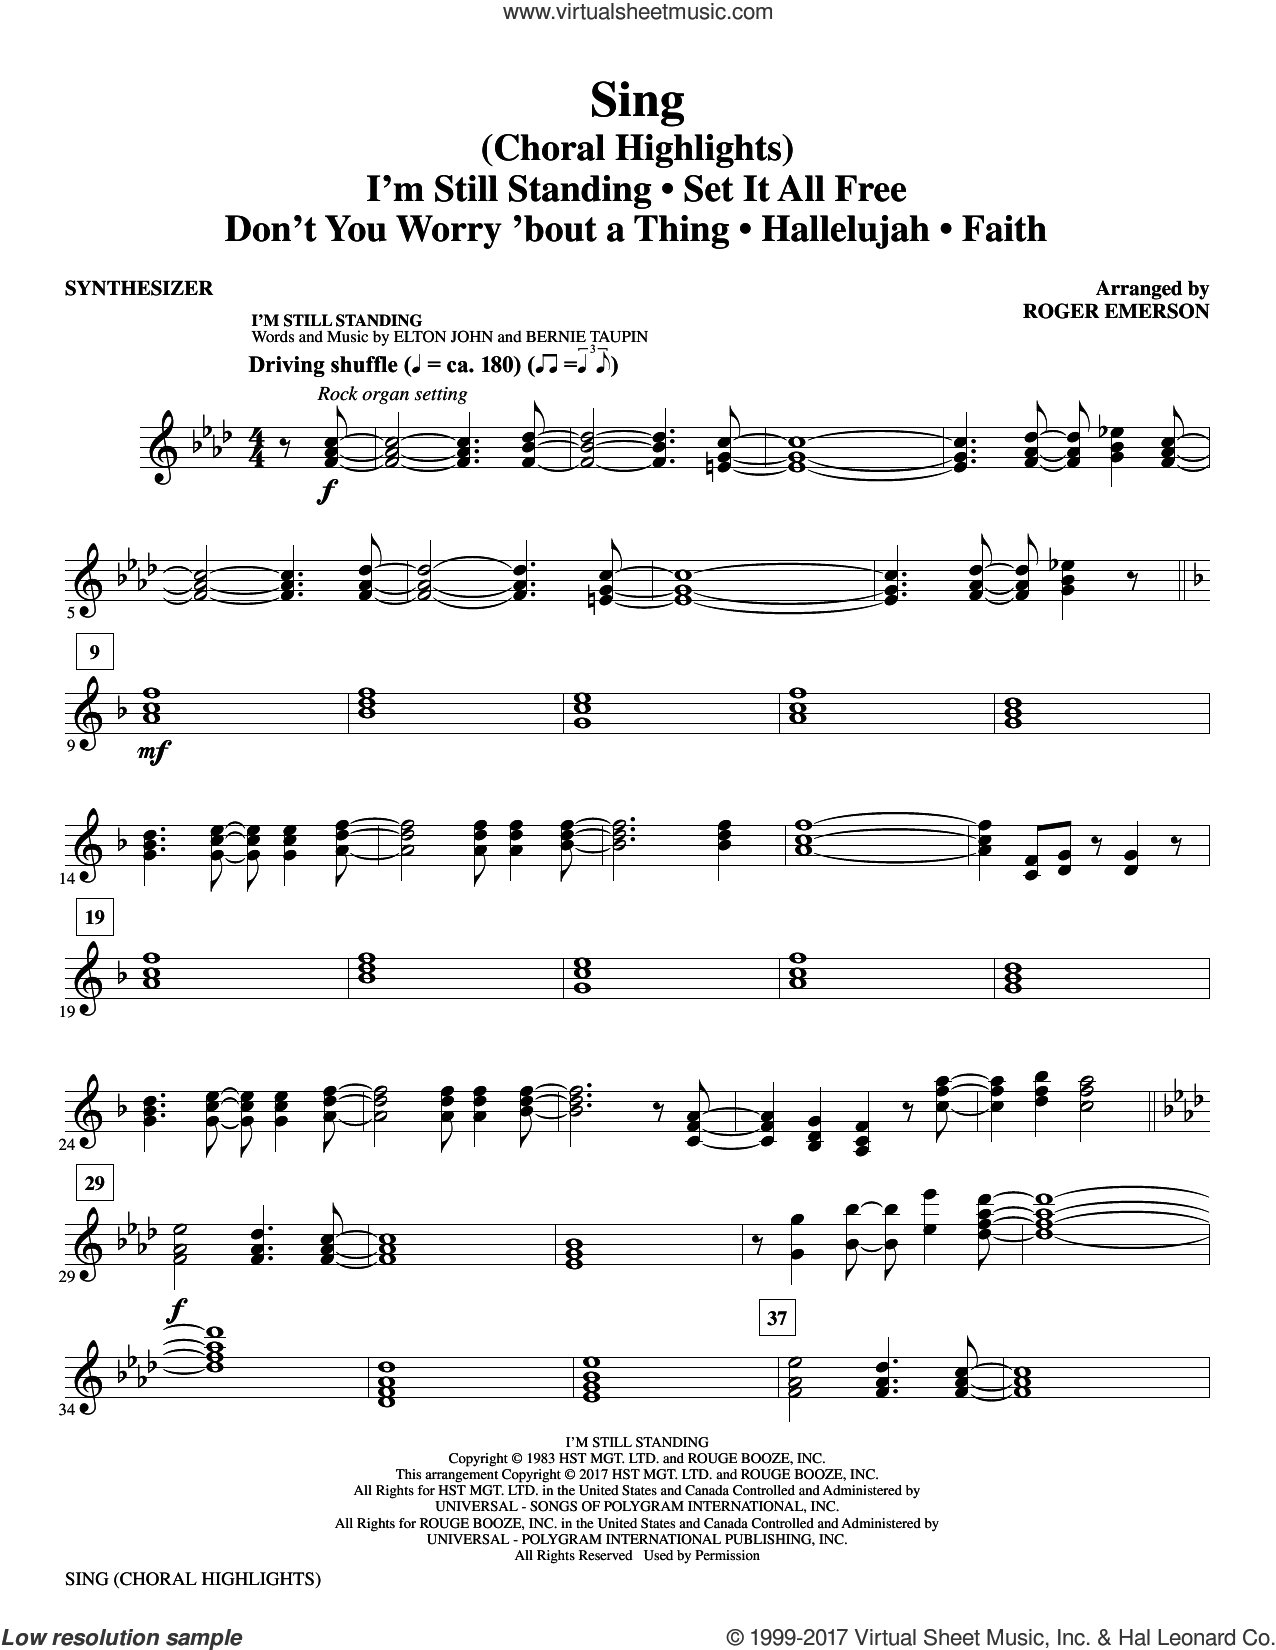 Sing (Choral Highlights) sheet music for orchestra/band (synthesizer) by Leonard Cohen, Roger Emerson, Justin Timberlake & Matt Morris featuring Charlie Sexton and Lee DeWyze, intermediate skill level